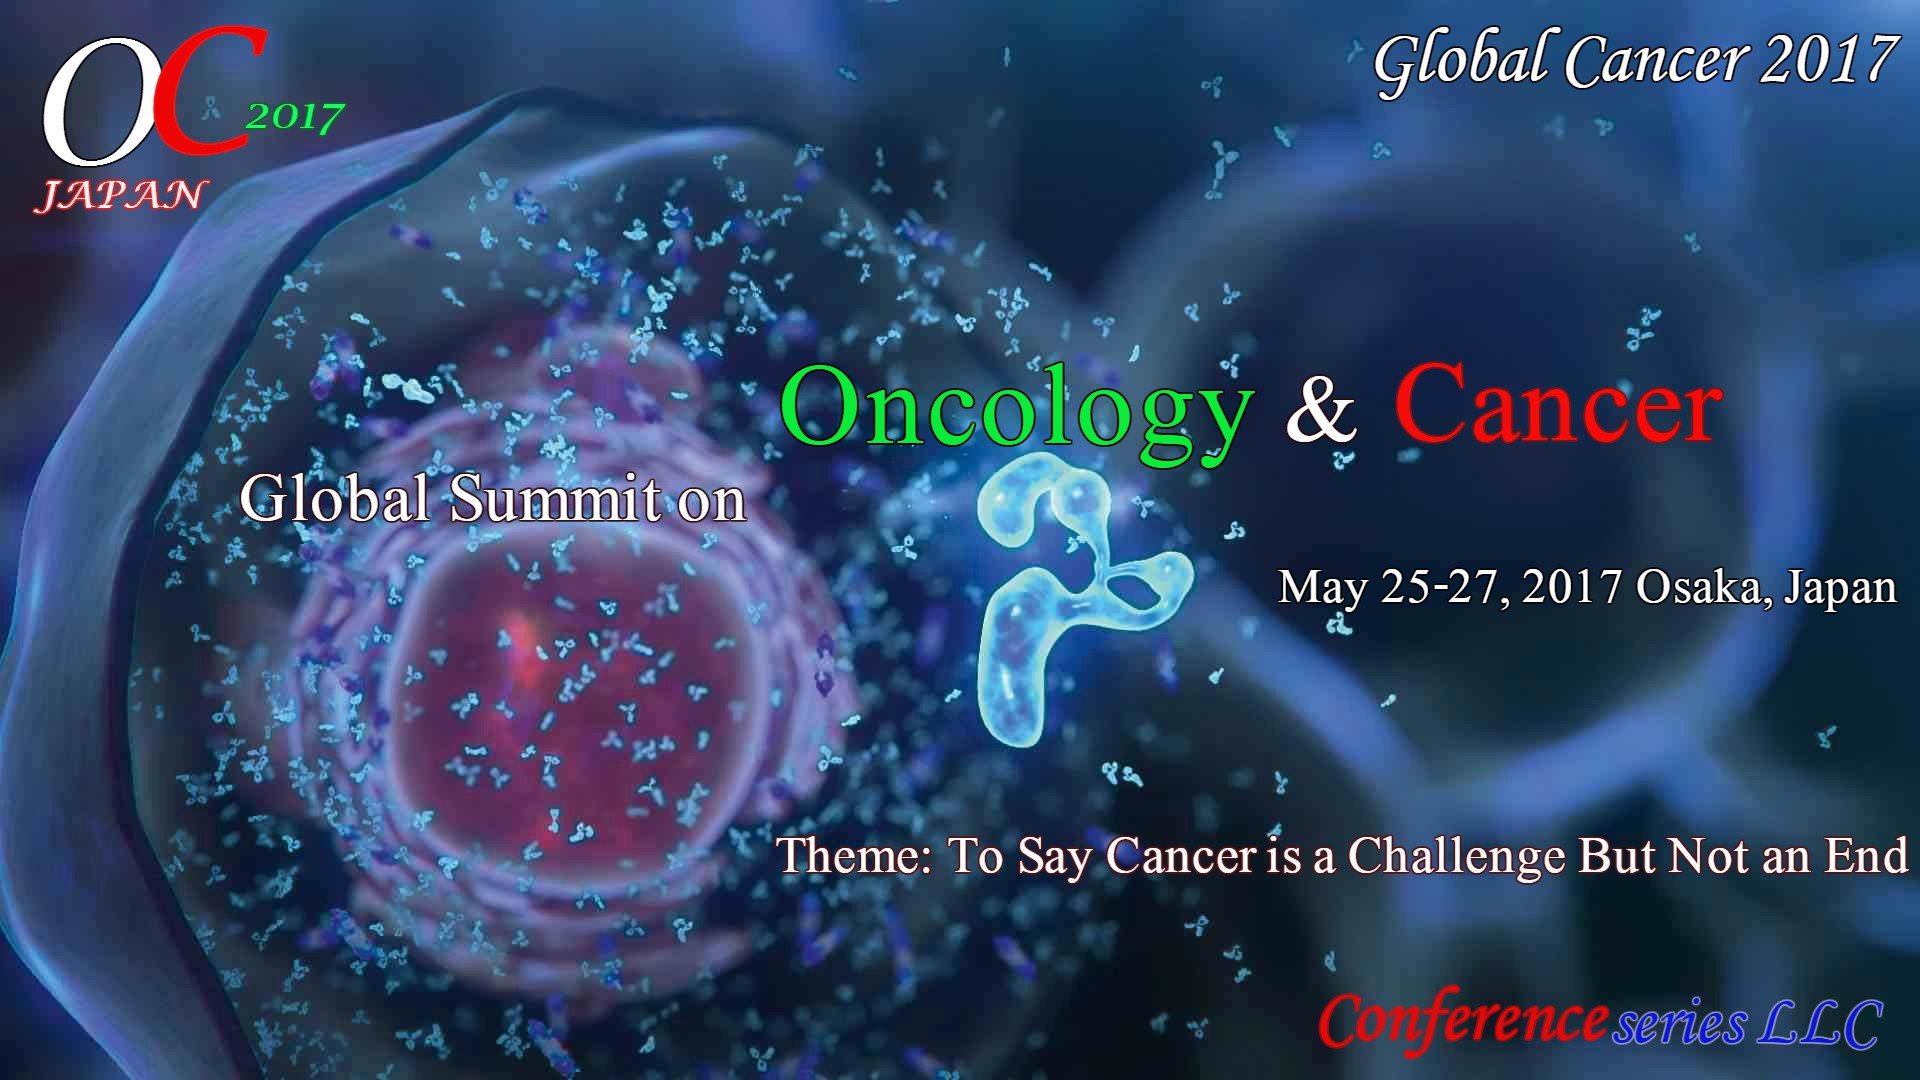 Global Summit on Oncology & Cancer Image